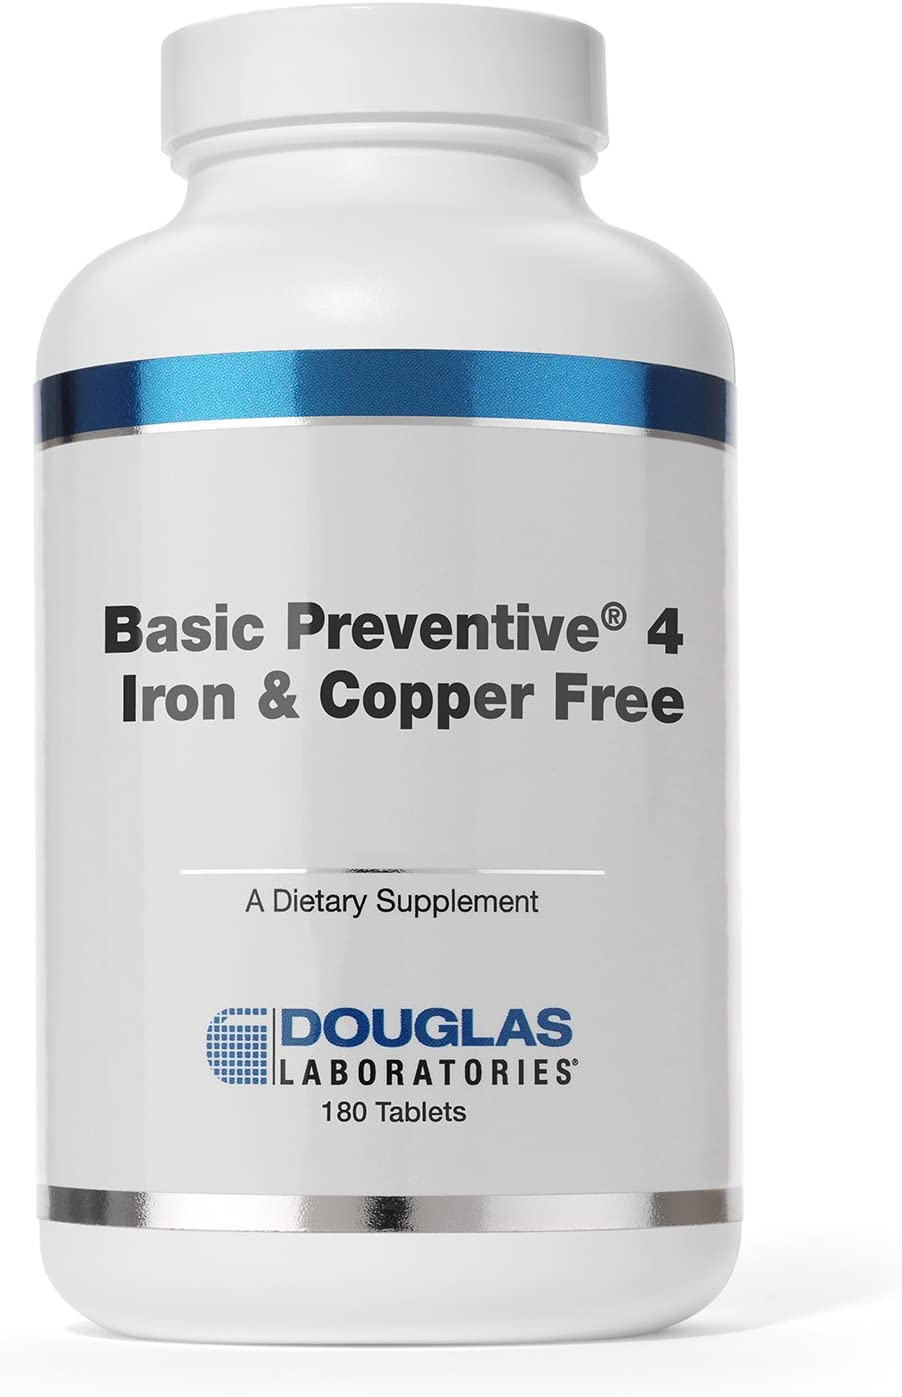 Douglas Laboratories – Basic Preventive 4 Iron Copper Free – Highly Concentrated Vitamin Mineral Trace Element Supplement – 180 Tablets